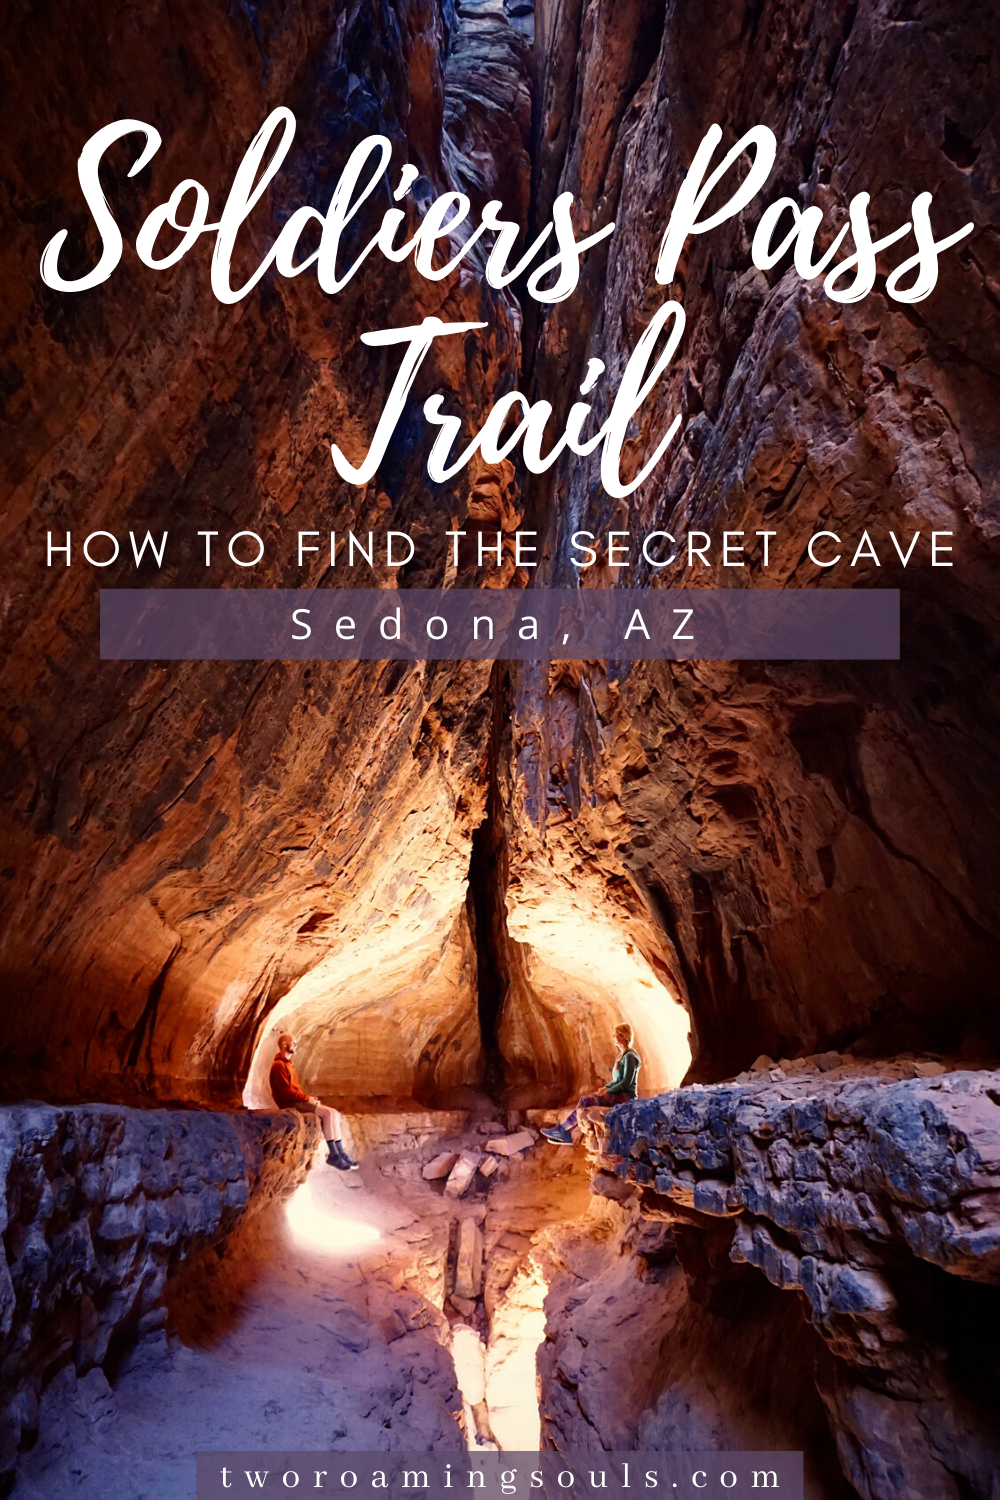 Soldier's Pass Trail: How To Find The Secret Cave